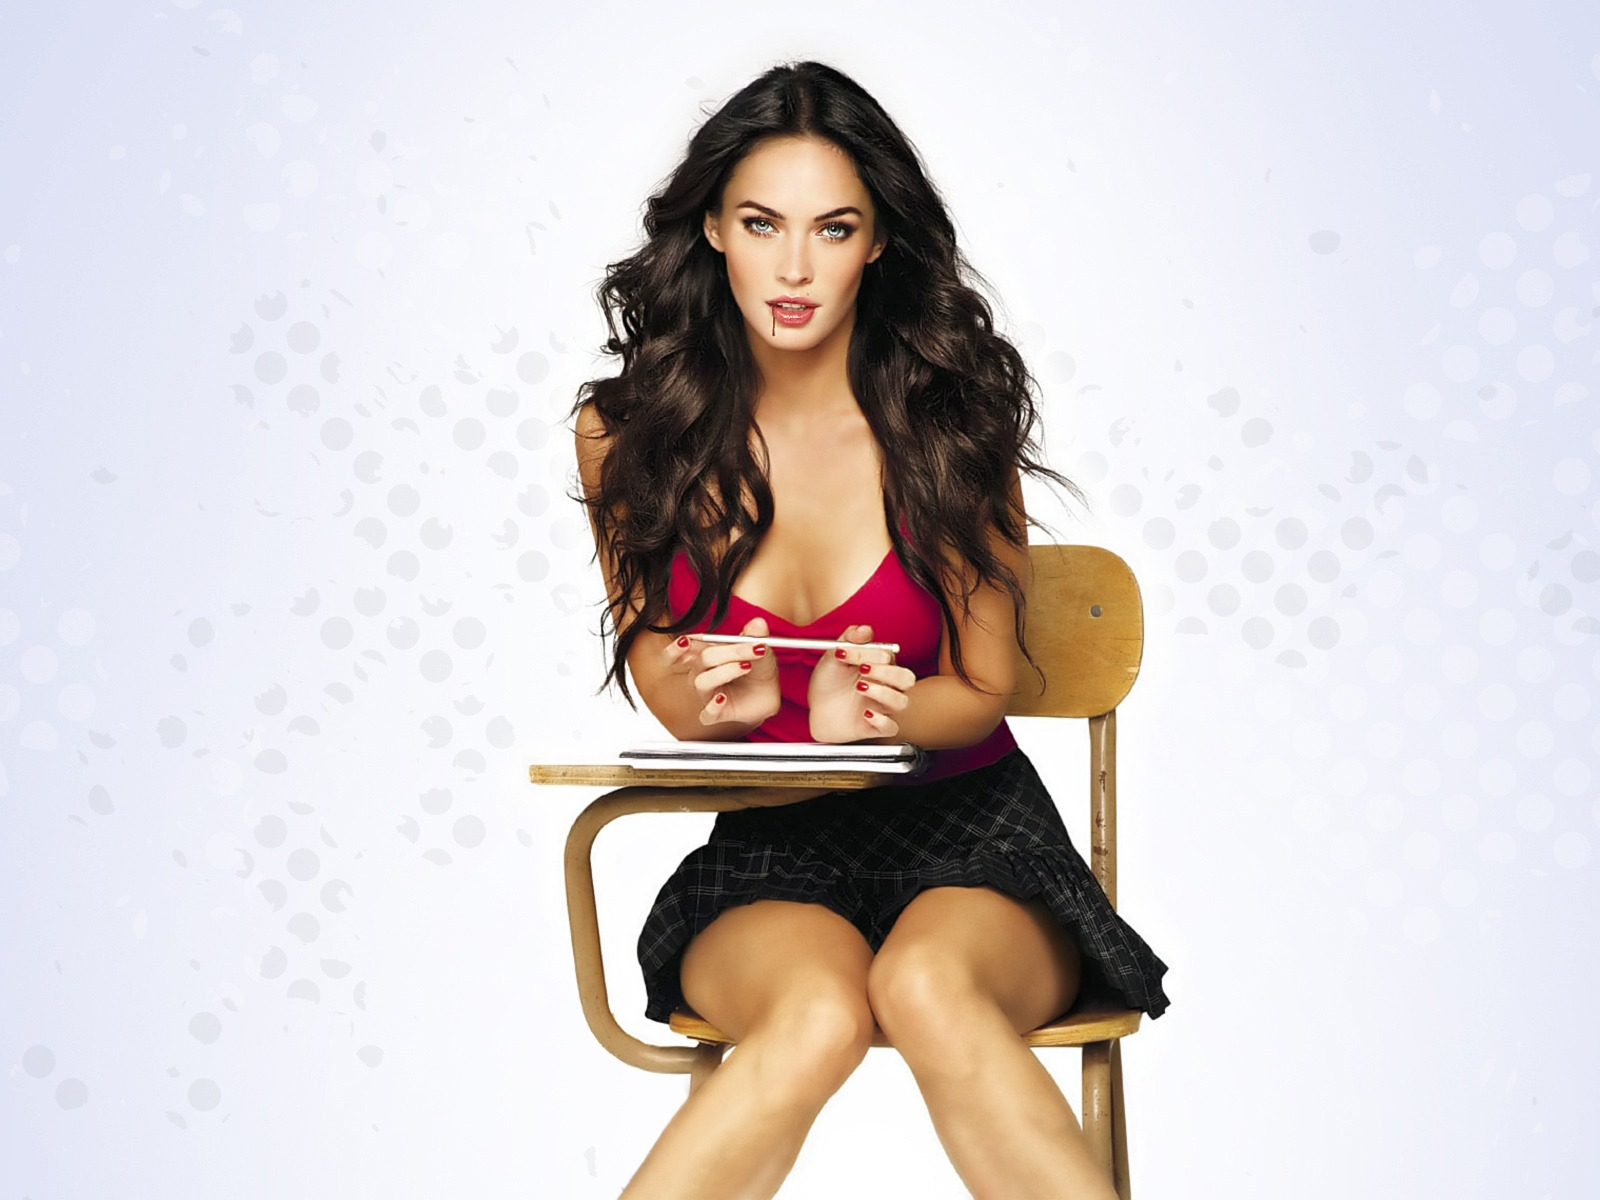 Megan Fox Giving Hot Look While Study 12